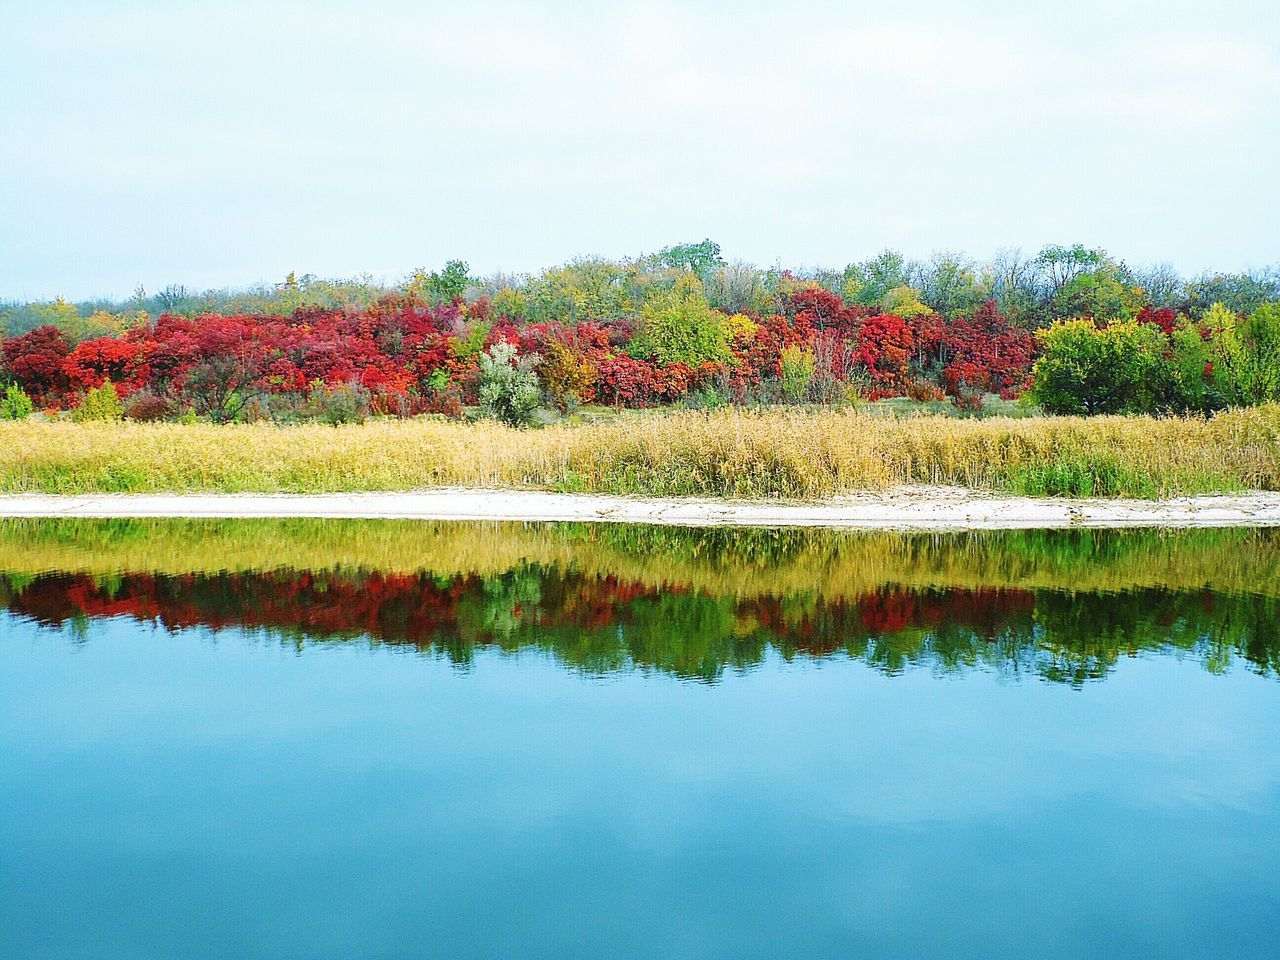 reflection, lake, beauty in nature, nature, water, autumn, scenics, tranquil scene, tranquility, tree, no people, change, day, outdoors, sky, waterfront, leaf, red, symmetry